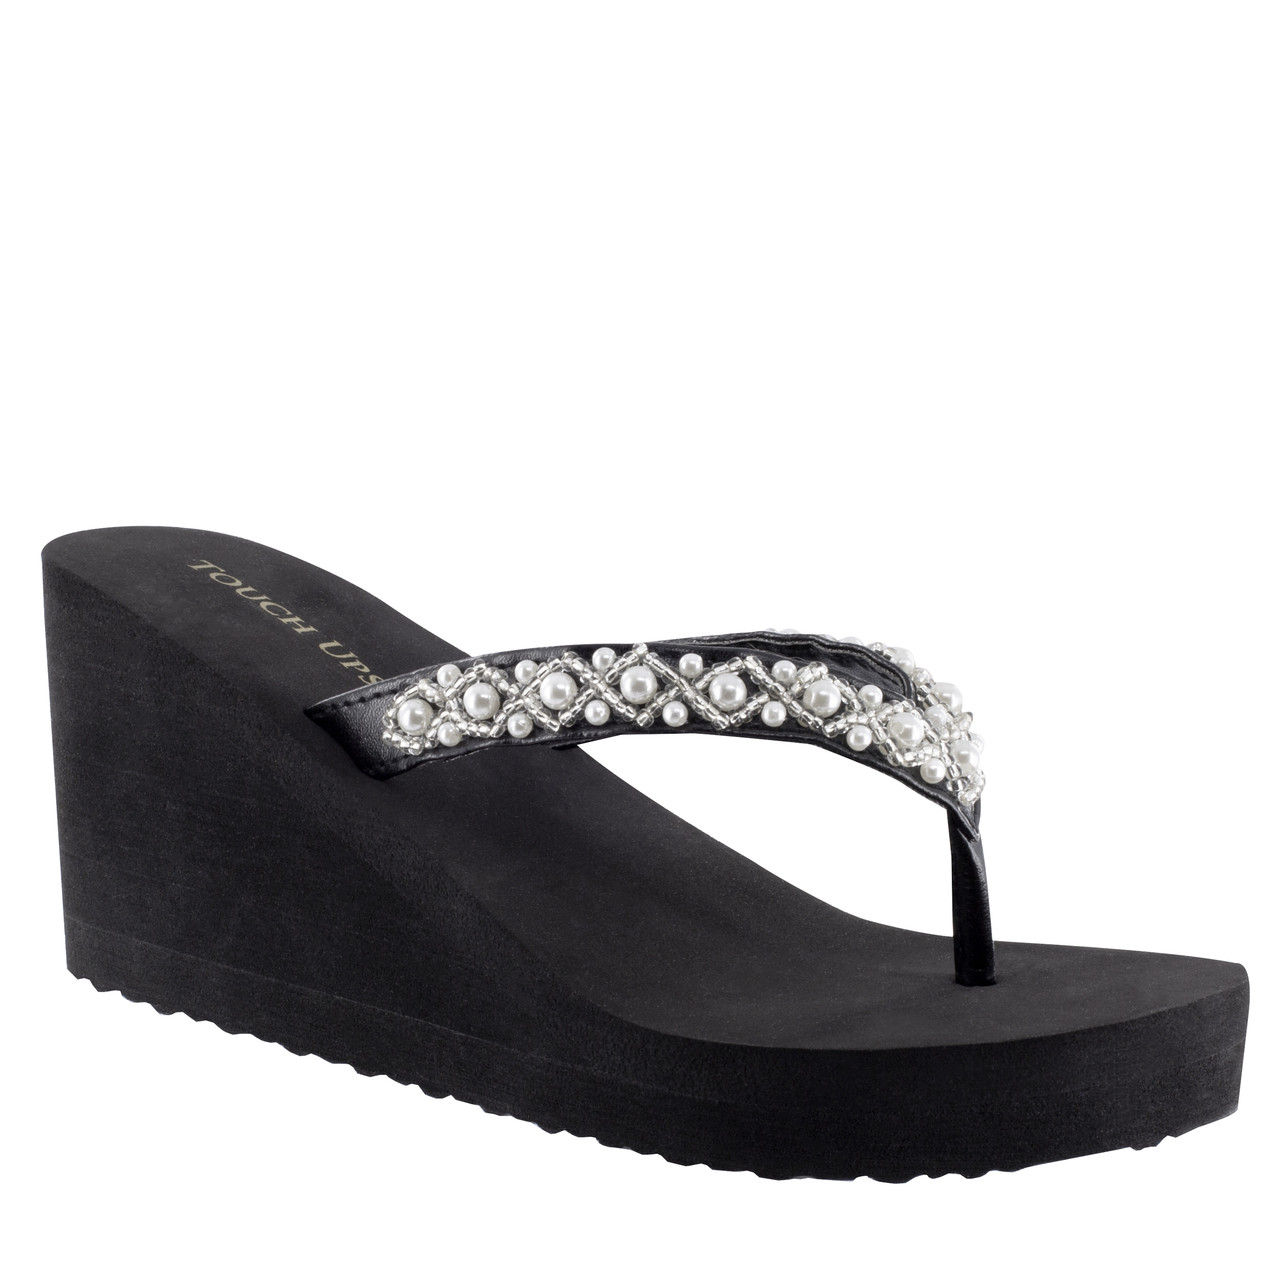 "Shelly Black Wedge Shoe - 2 1/2"" wedge and pearl accents Style 117"